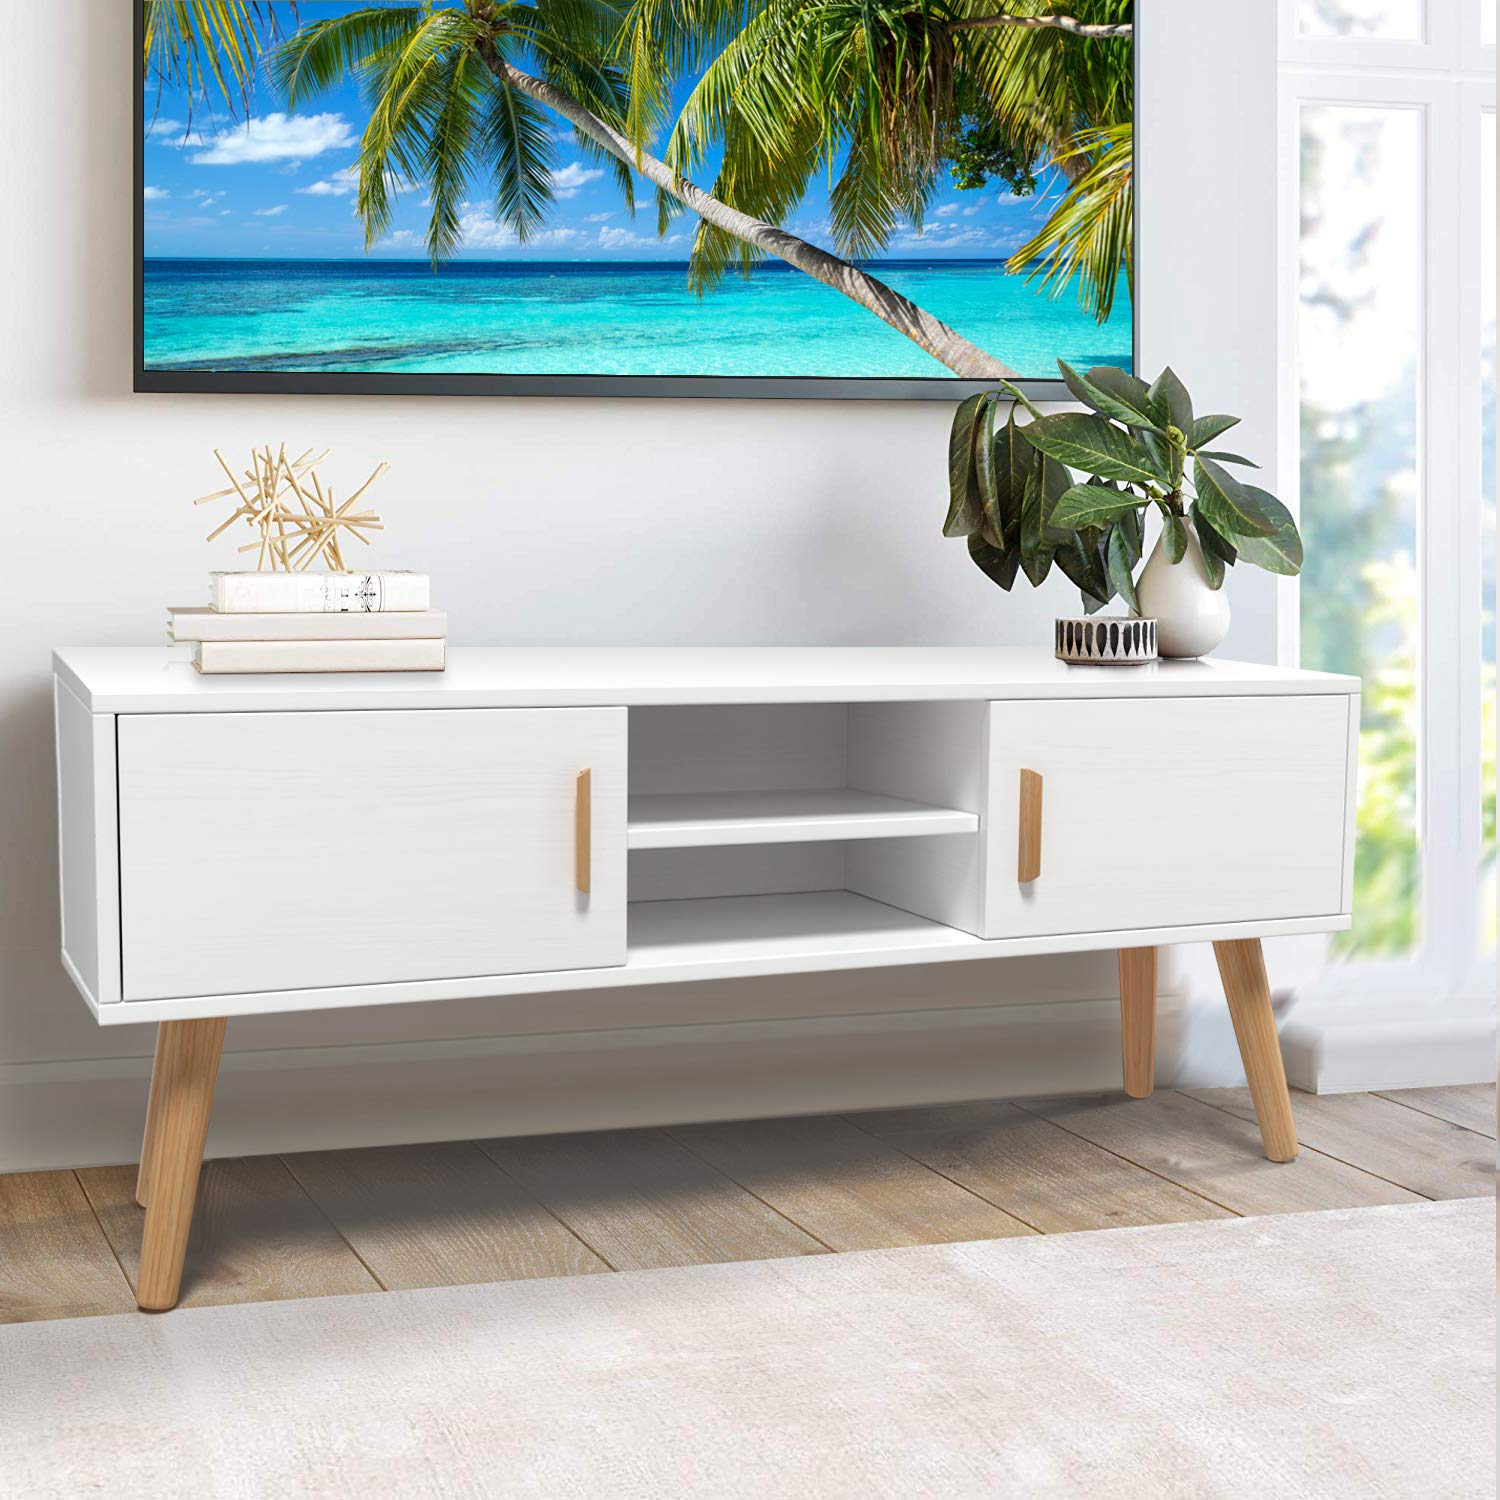 Picture of: Amzdeal Tv Stand Entertainment Centre Modern Tv Console For Flat Screen Tvs Up To 55 Inch 2 Cabinets And 2 Shelves Solid Wood Legs Entertainment Stand For Living Room Entertainment Room Office